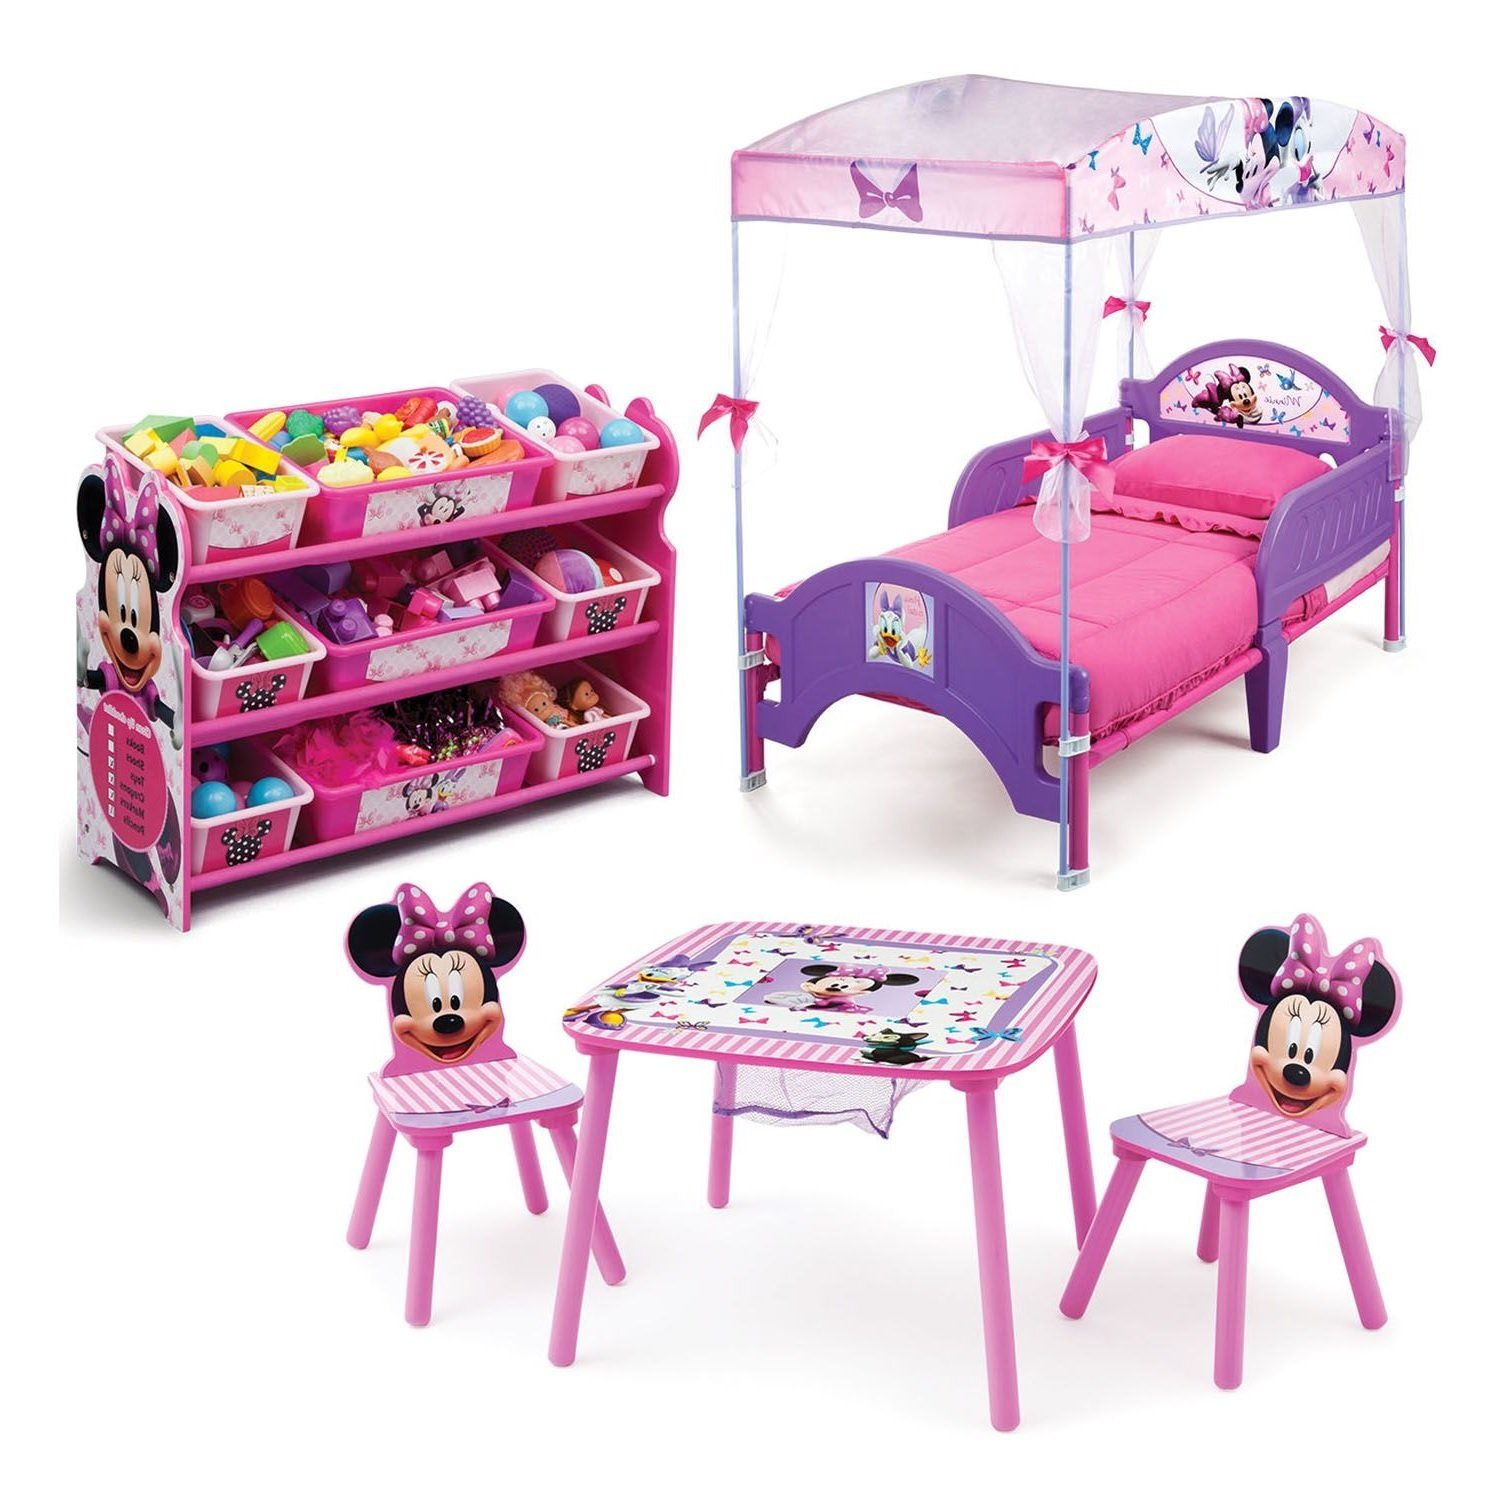 Amazon.com : Minnie Mouse Kids Bedroom Furniture Sets 3 ...